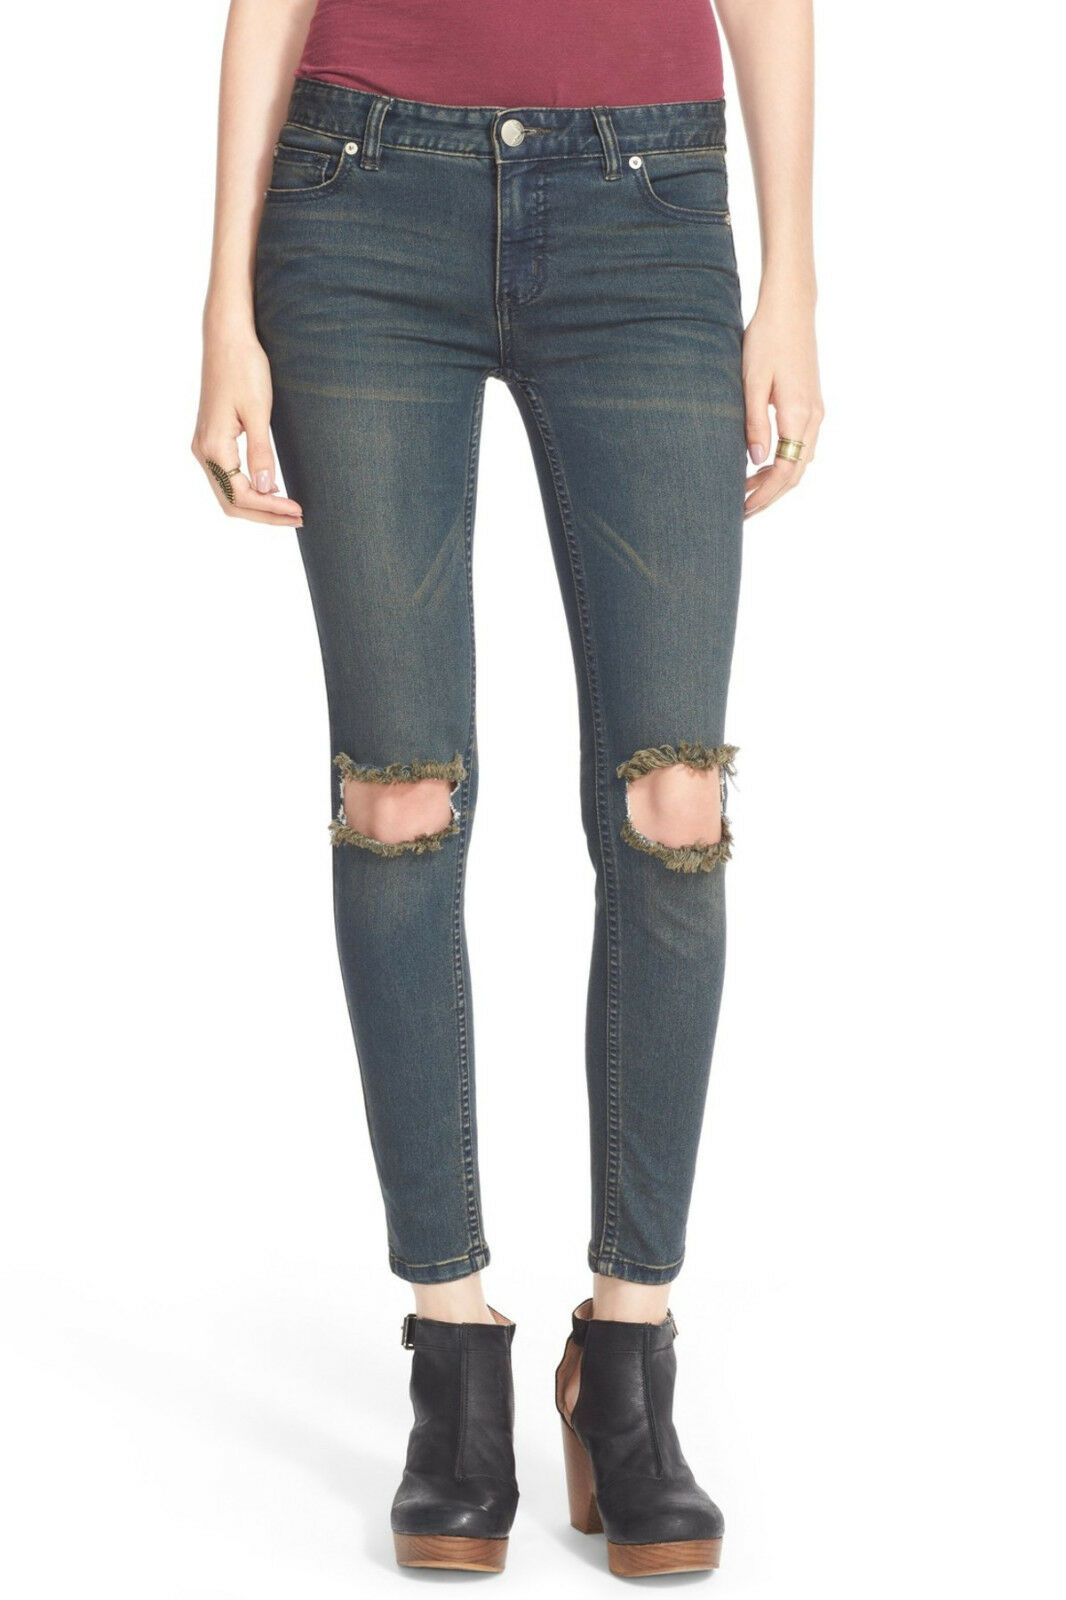 FREE PEOPLE Destroyed Skinny Jeans Size 25 Dark Wash Patsy Ripped NWT